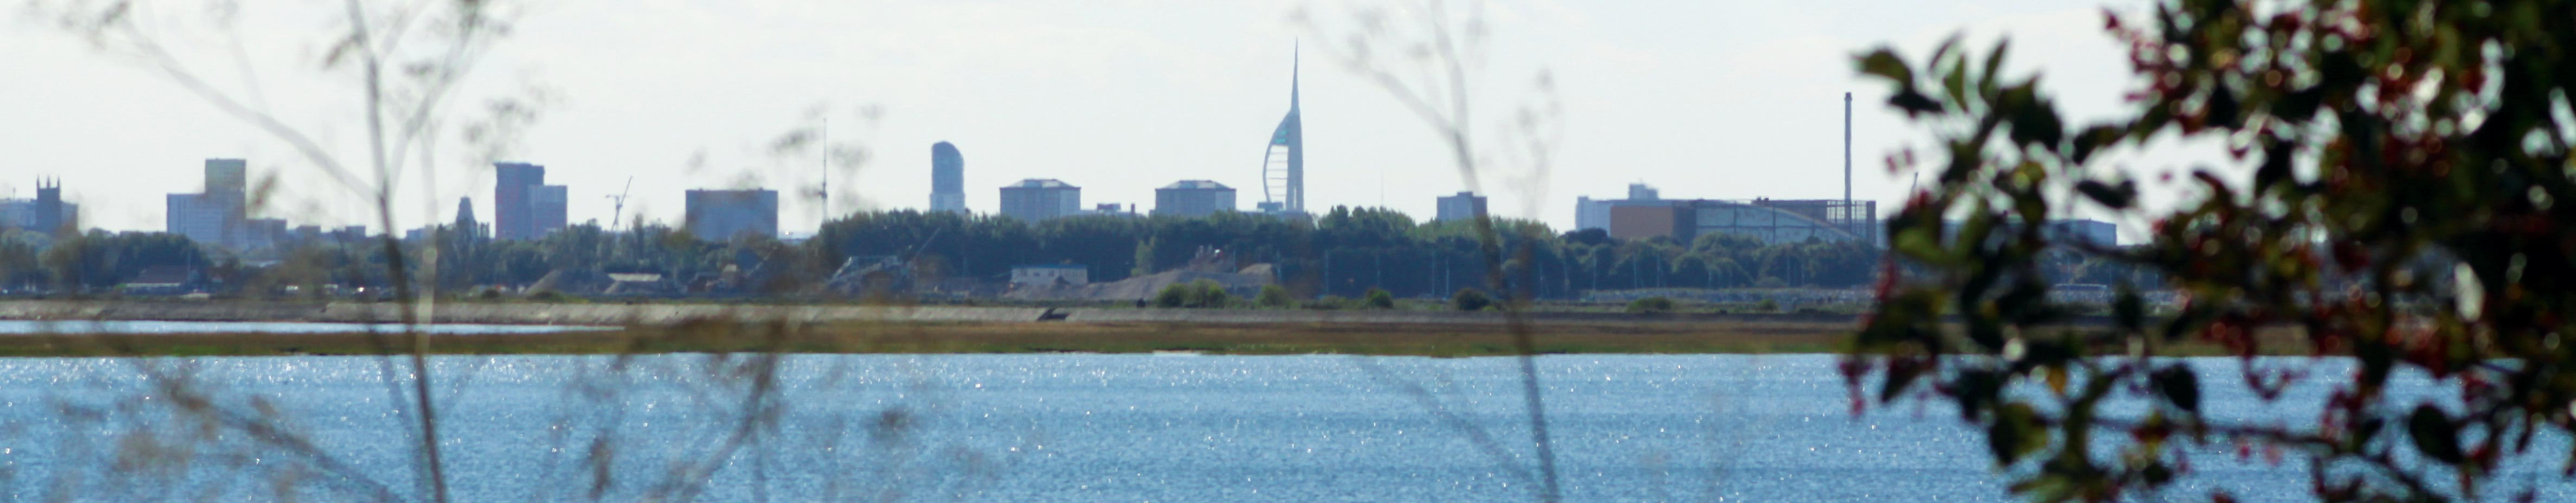 Views of the Spinnaker Tower from Brockhampton West